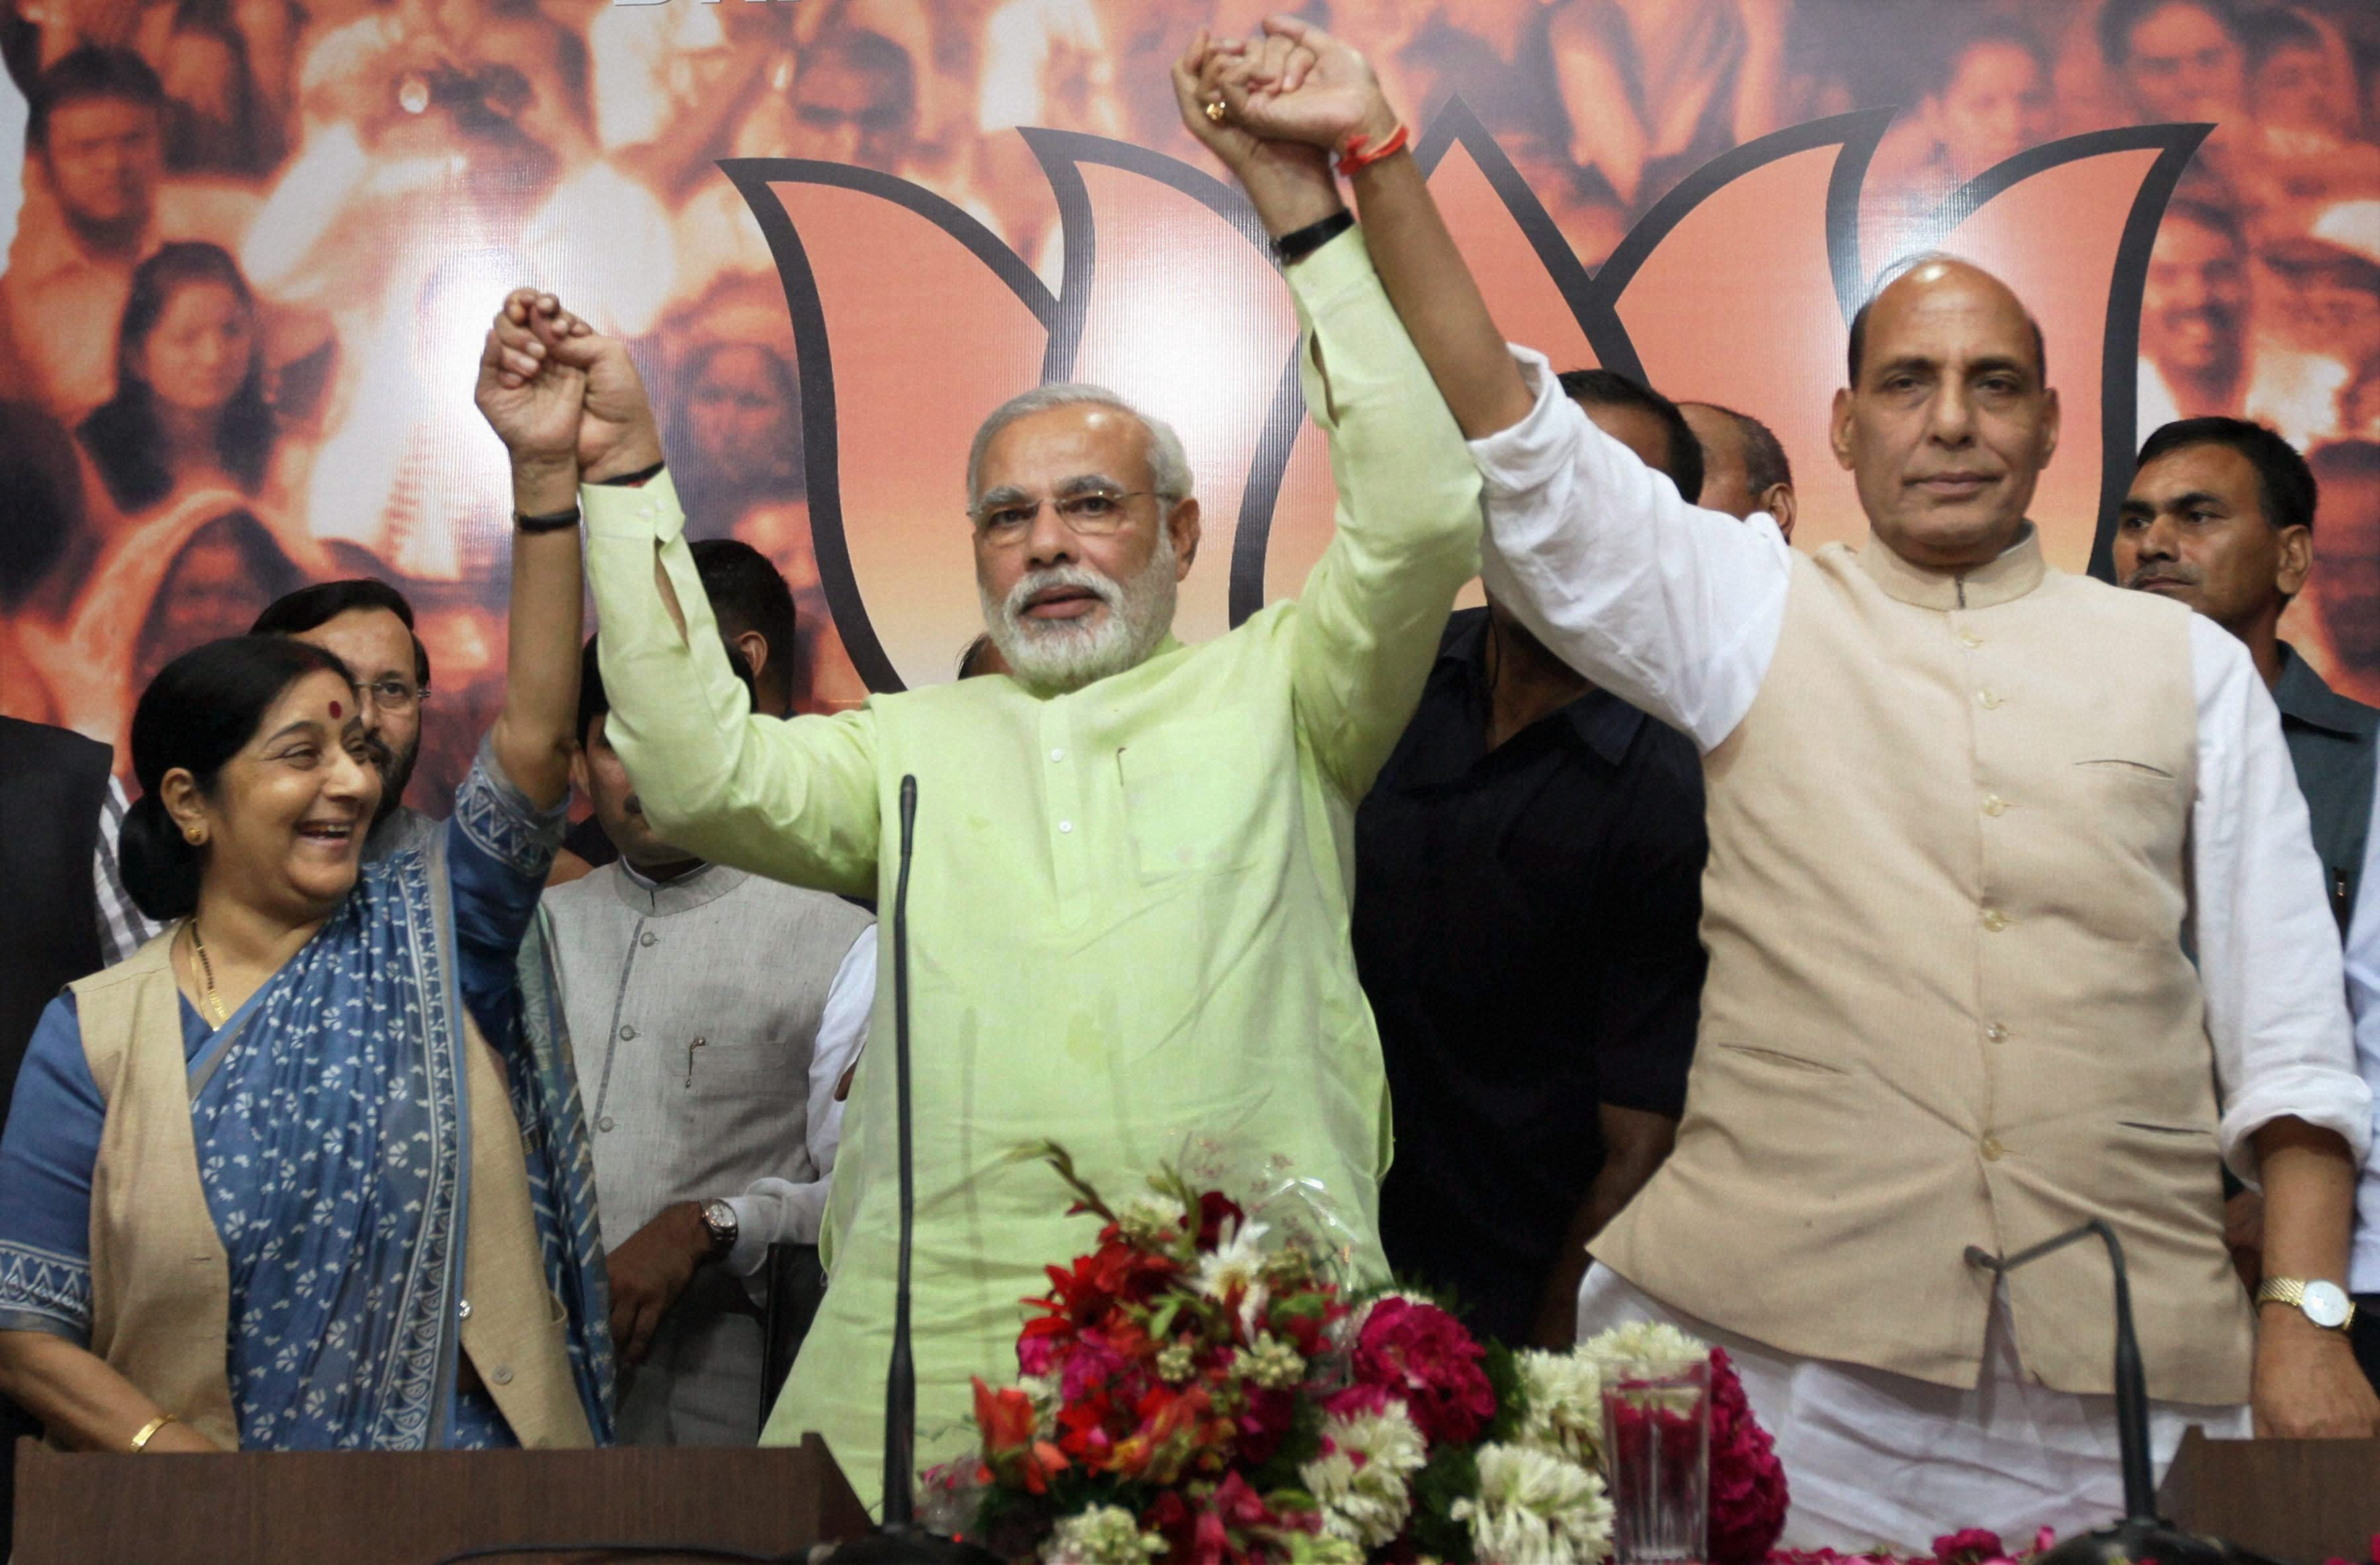 Narendra Modi is BJP\'s prime ministerial candidate for 2014 polls